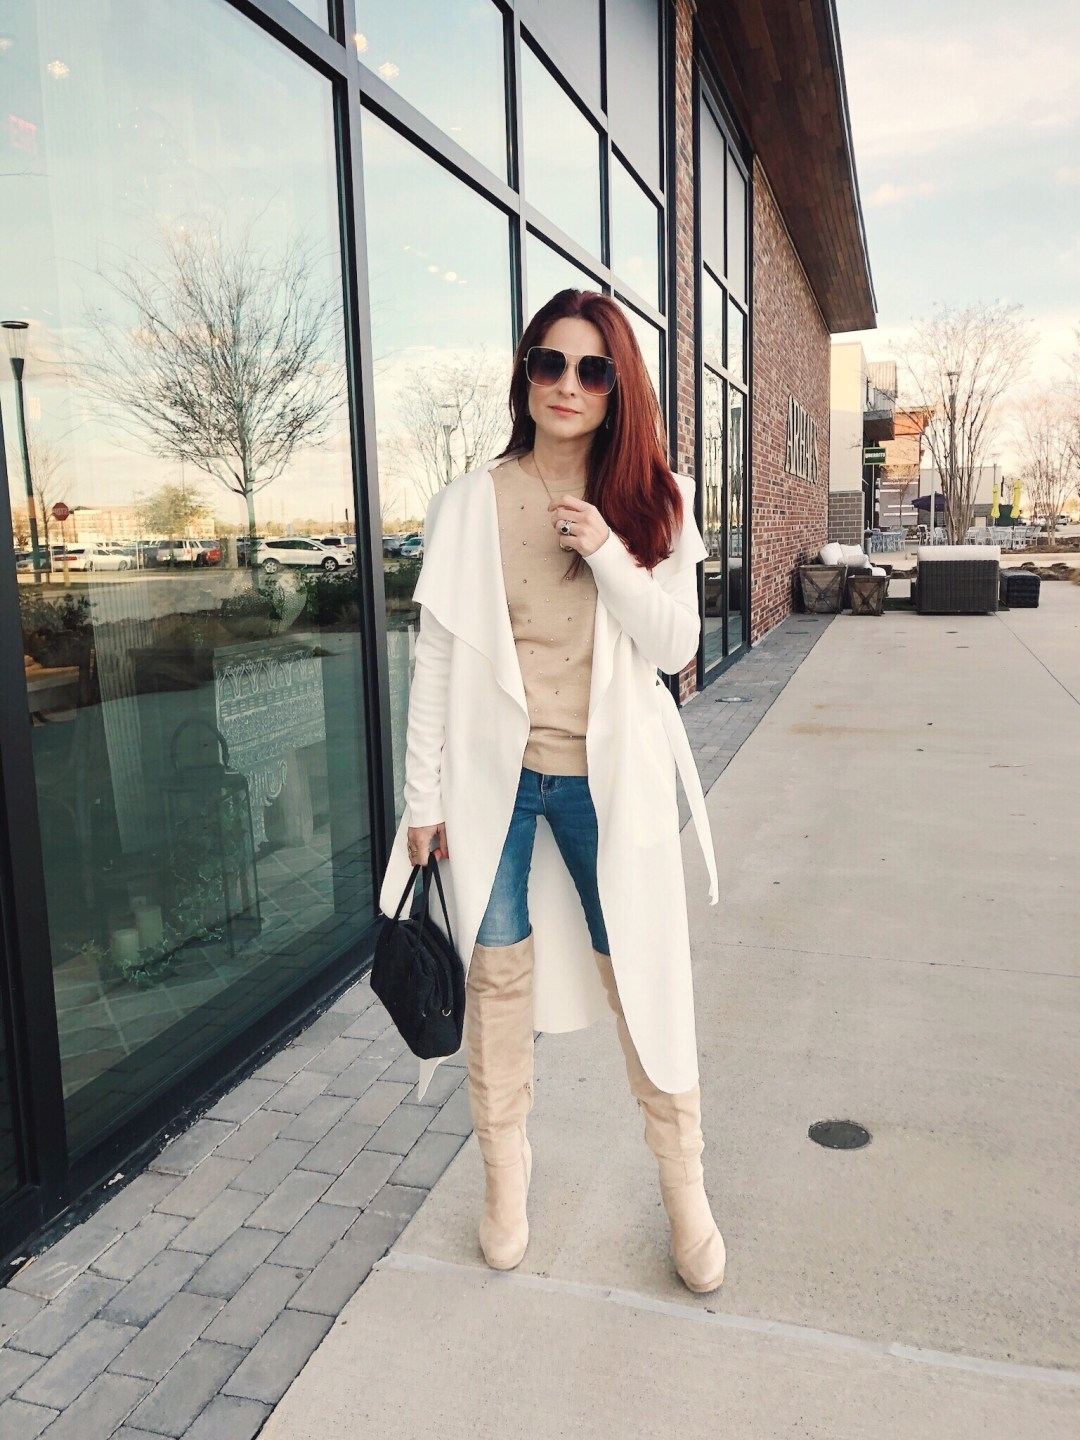 boot outfits, over the knee boot inspiration, blush sweaters, boots with jeans